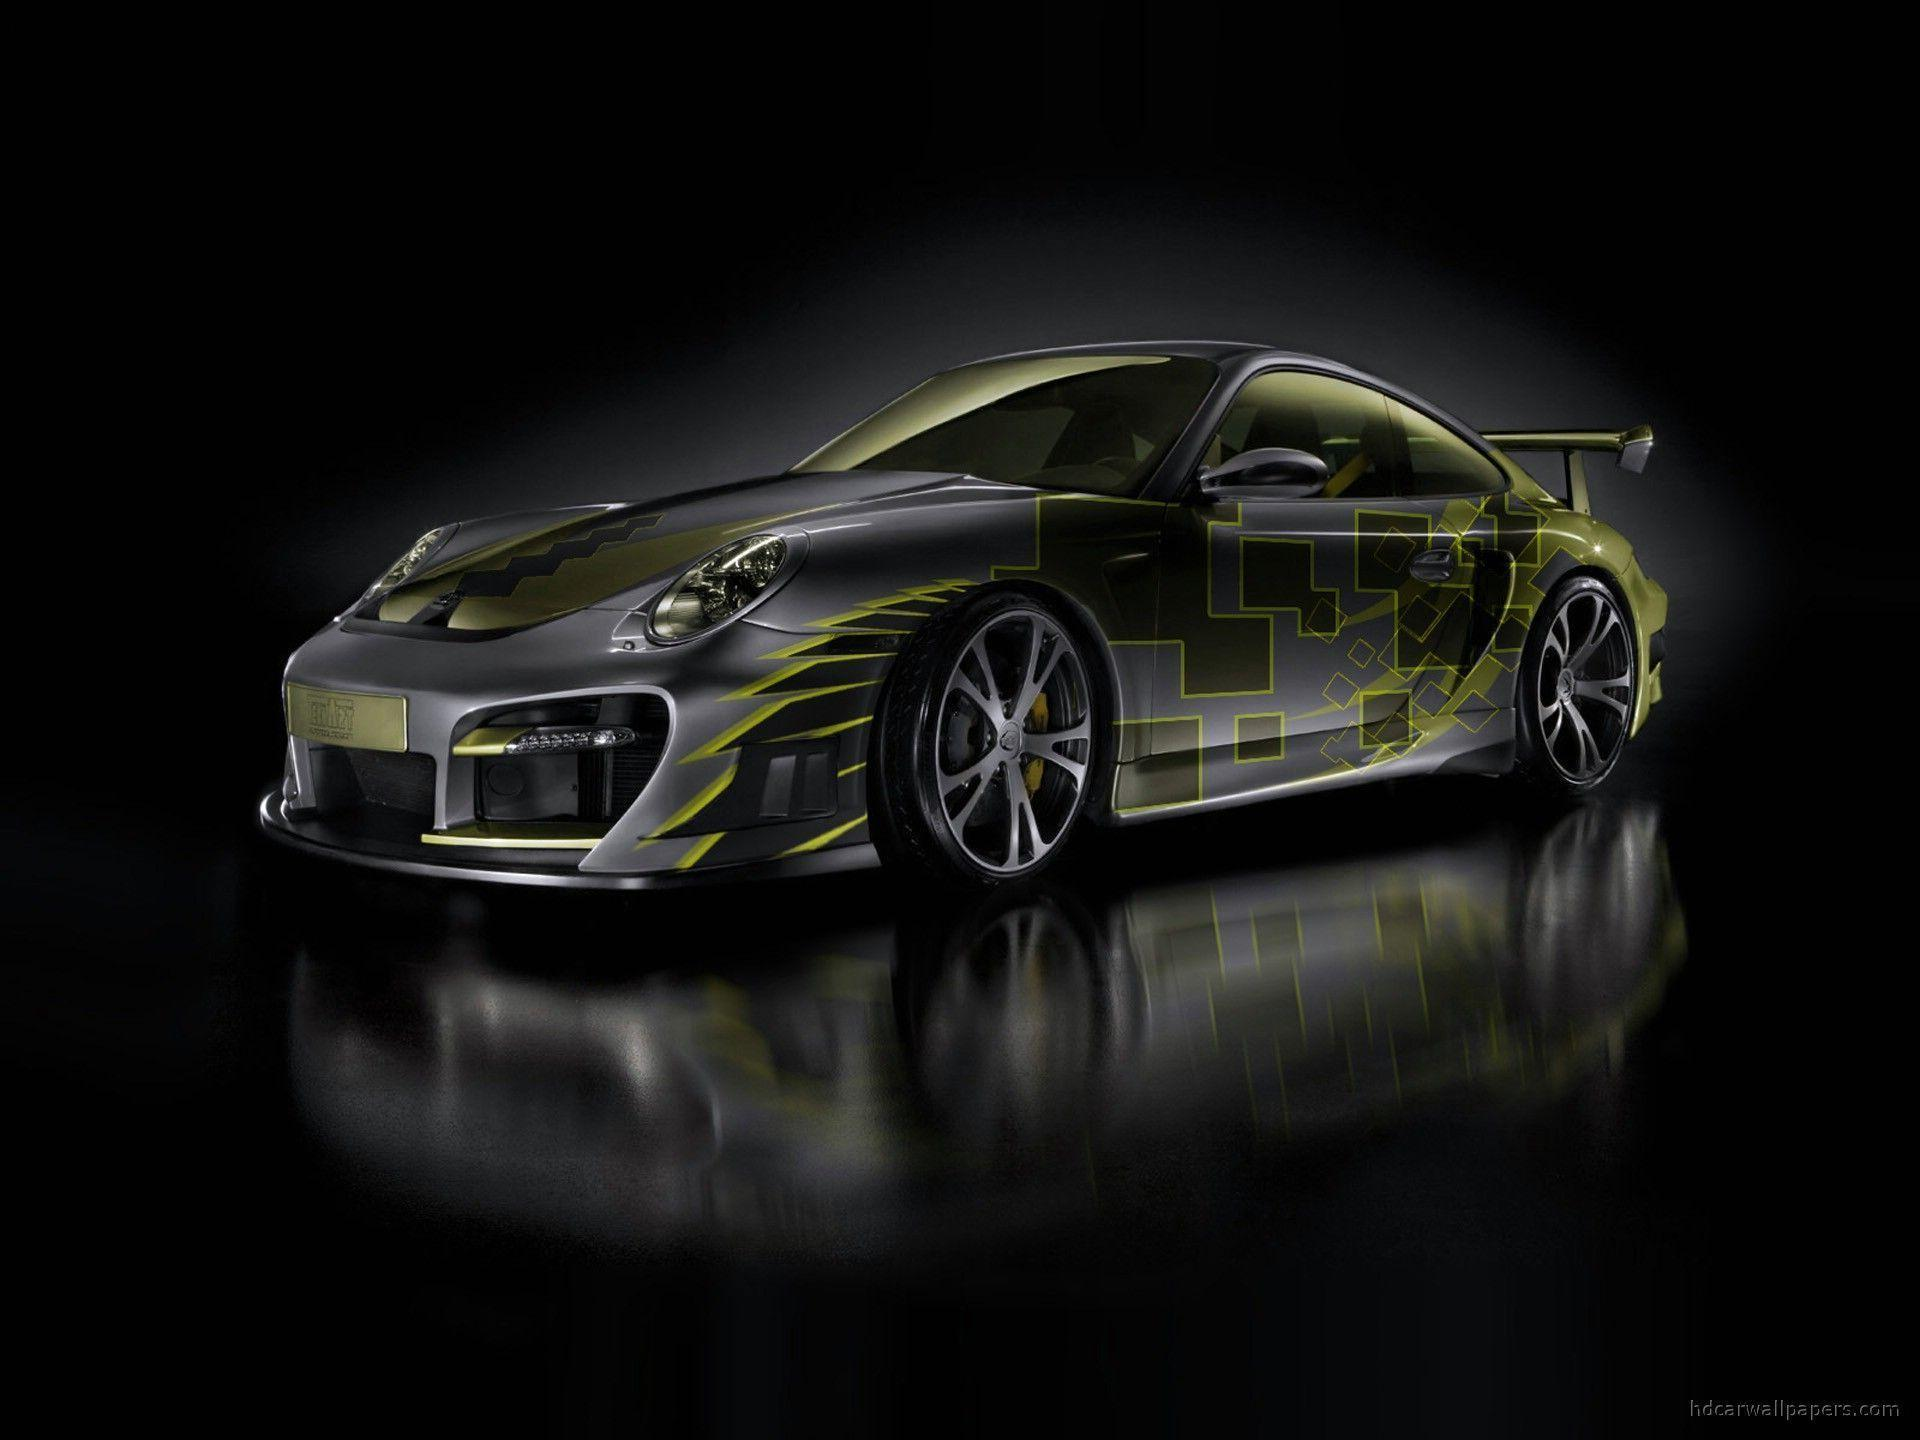 TechArt Porsche 911 Turbo HD Wallpapers | Free Art Wallpapers